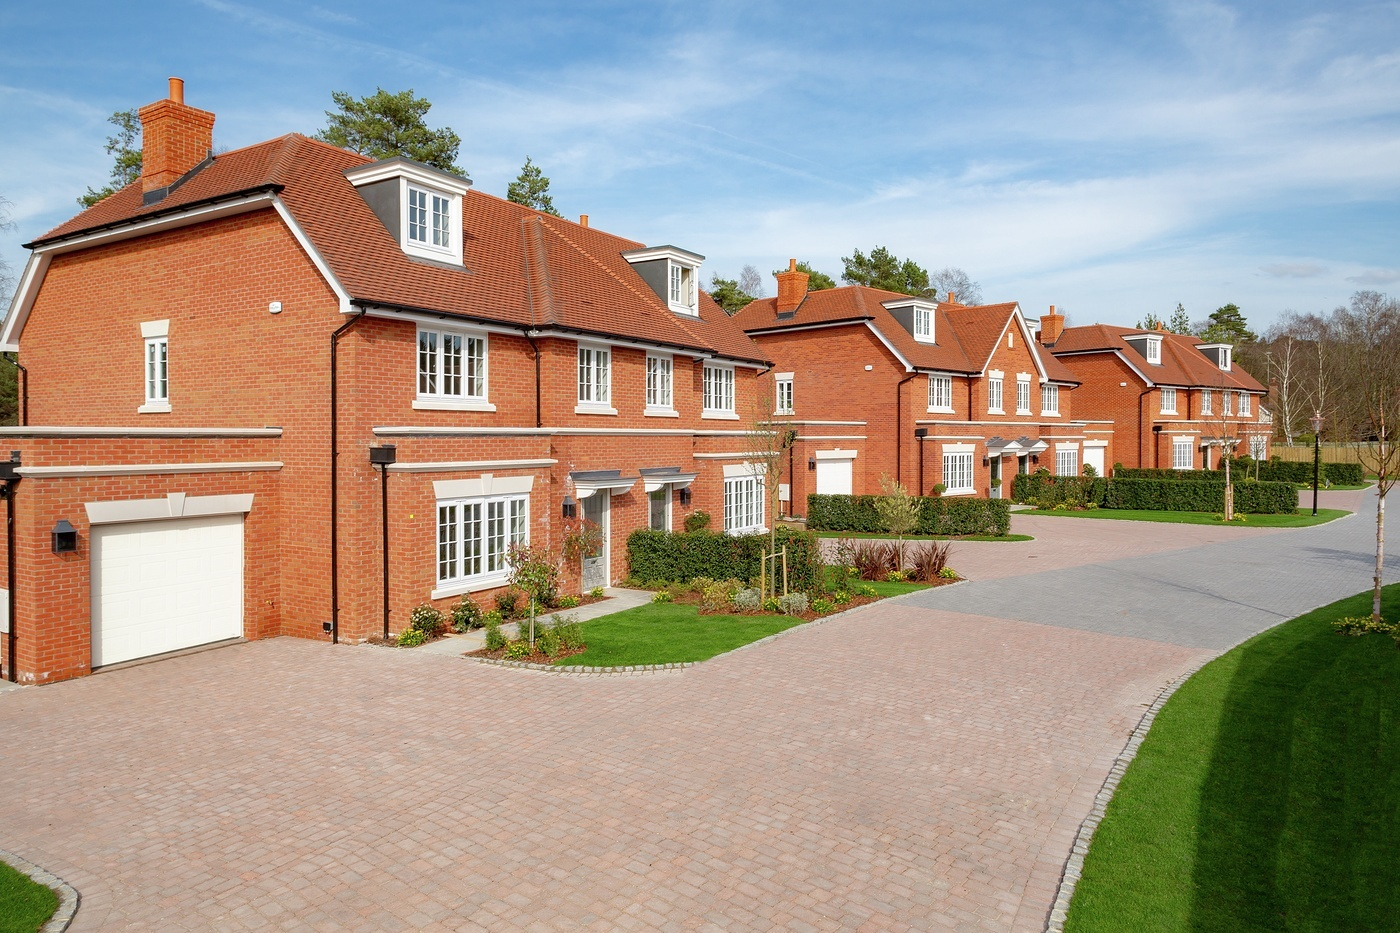 millgate-homes-ascot-our-work-developers-ascot-design-view1.jpg